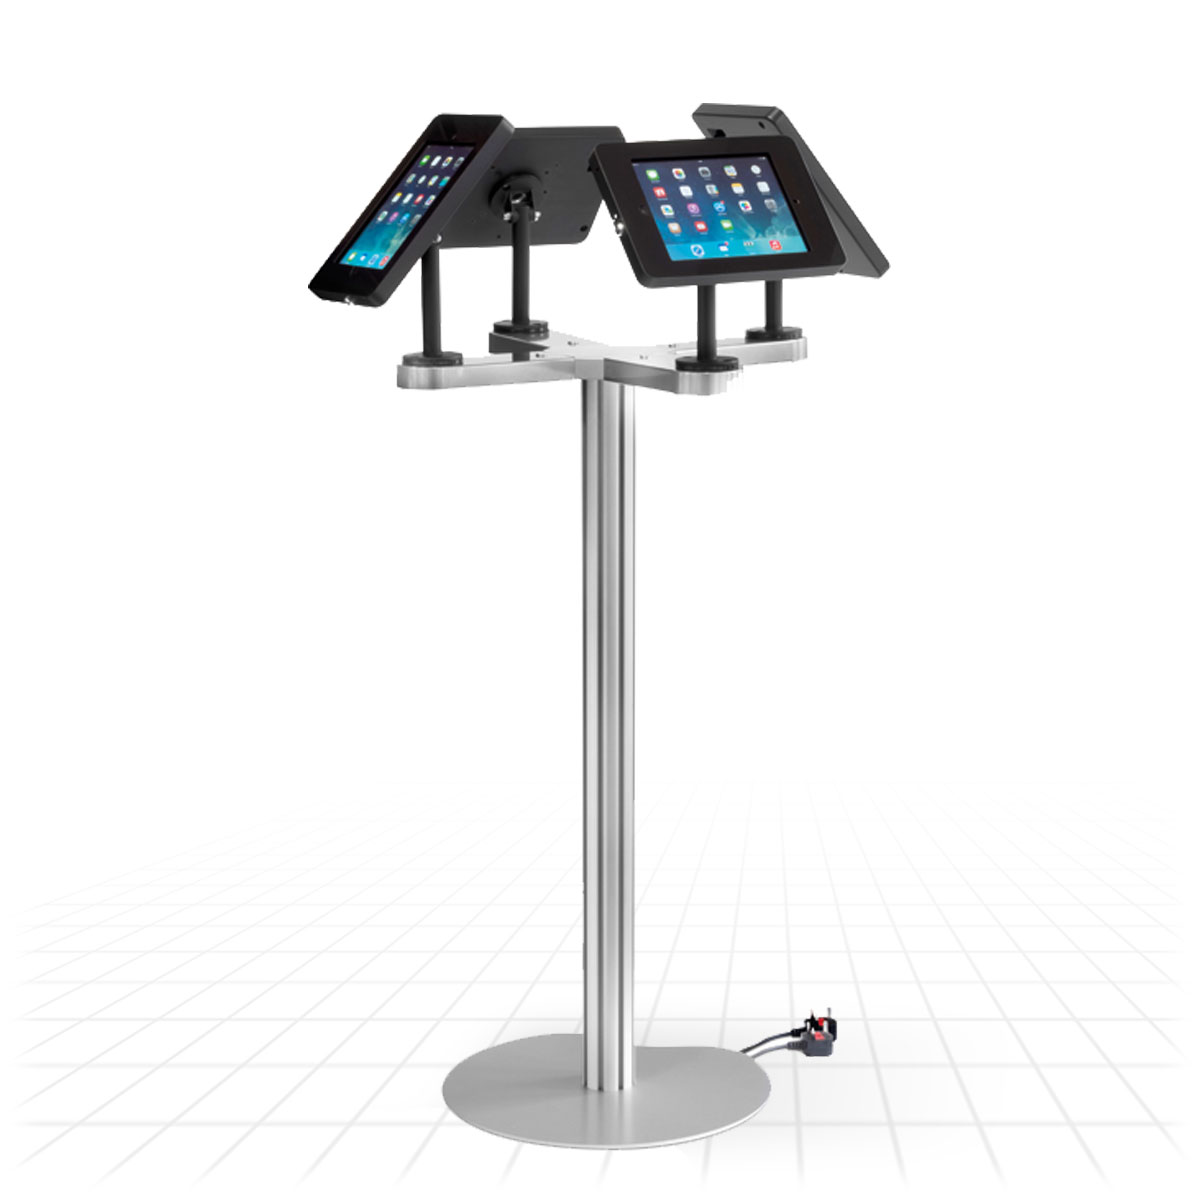 Ipad Quad Display Stand Tablet Display Stands